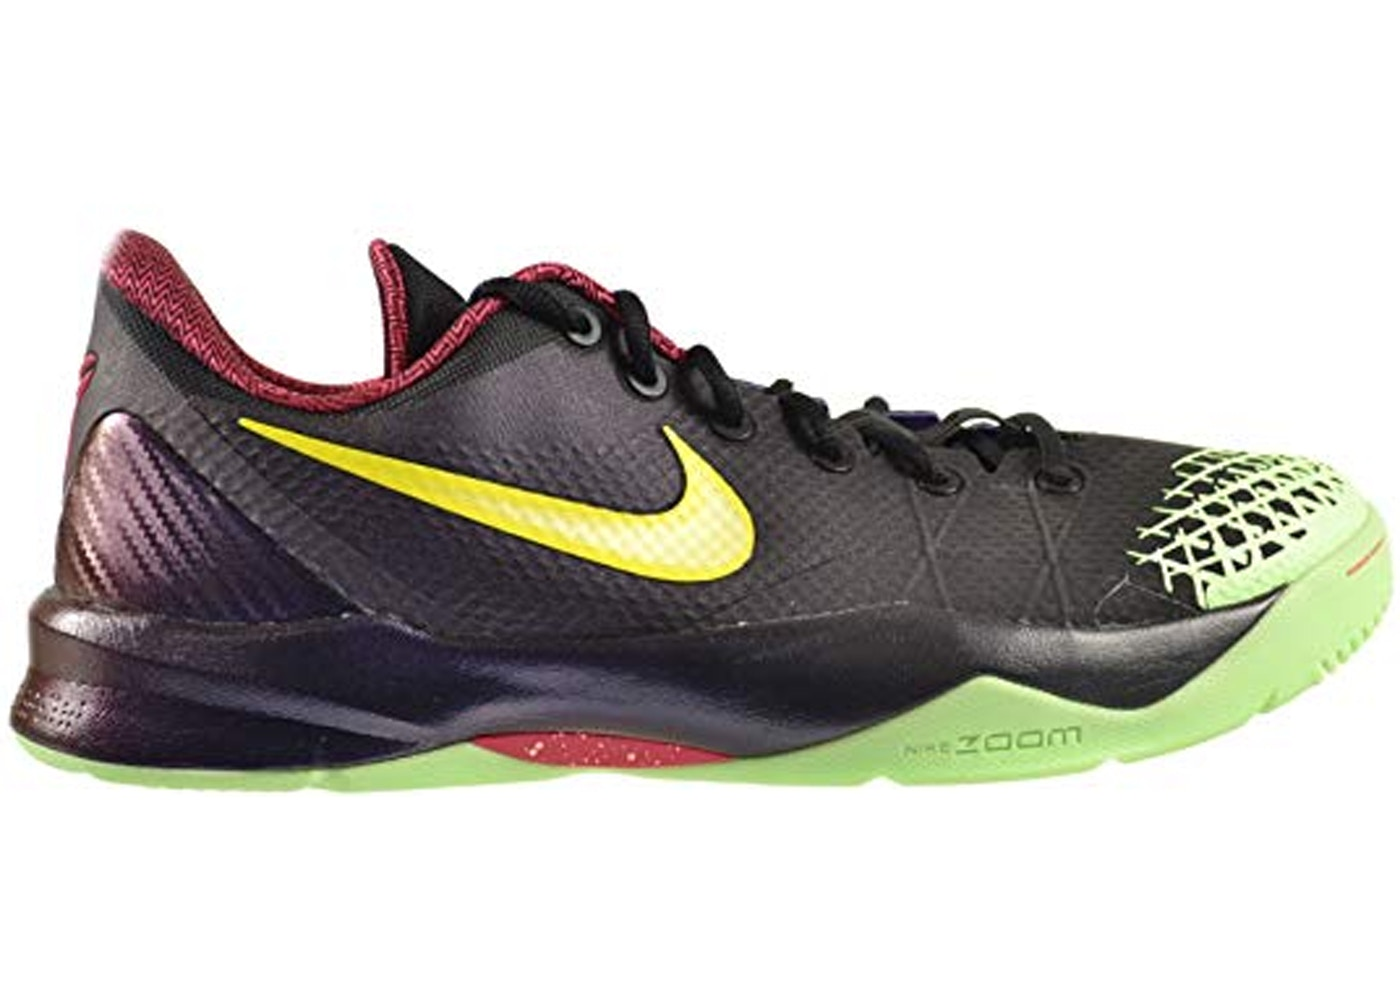 reputable site f358a 75107 Nike Kobe Other Shoes - Lowest Ask